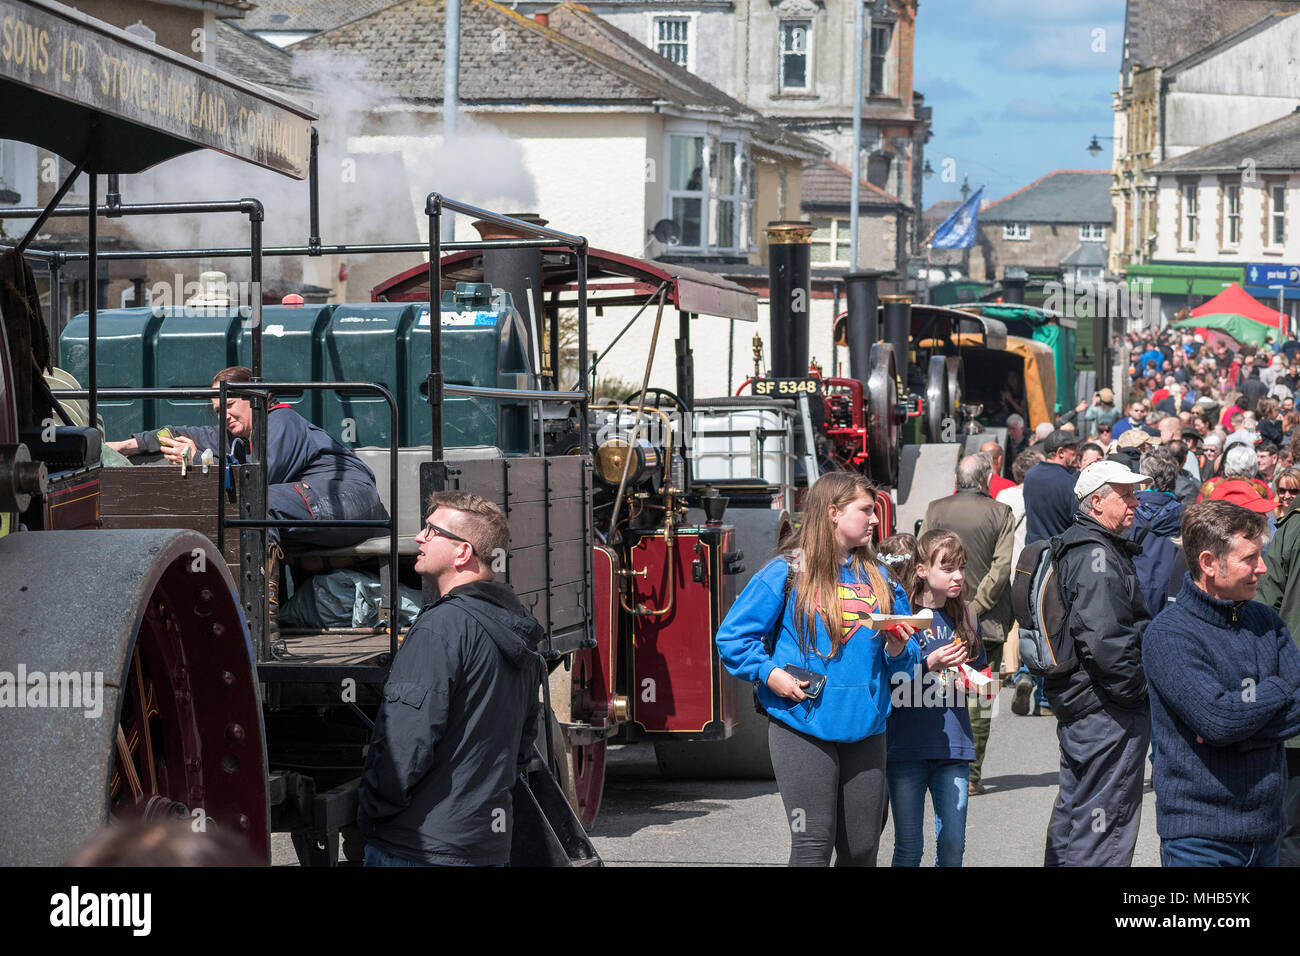 steam engines crowds of people trevithick day, camborne, cornwall, england, britain, uk. - Stock Image